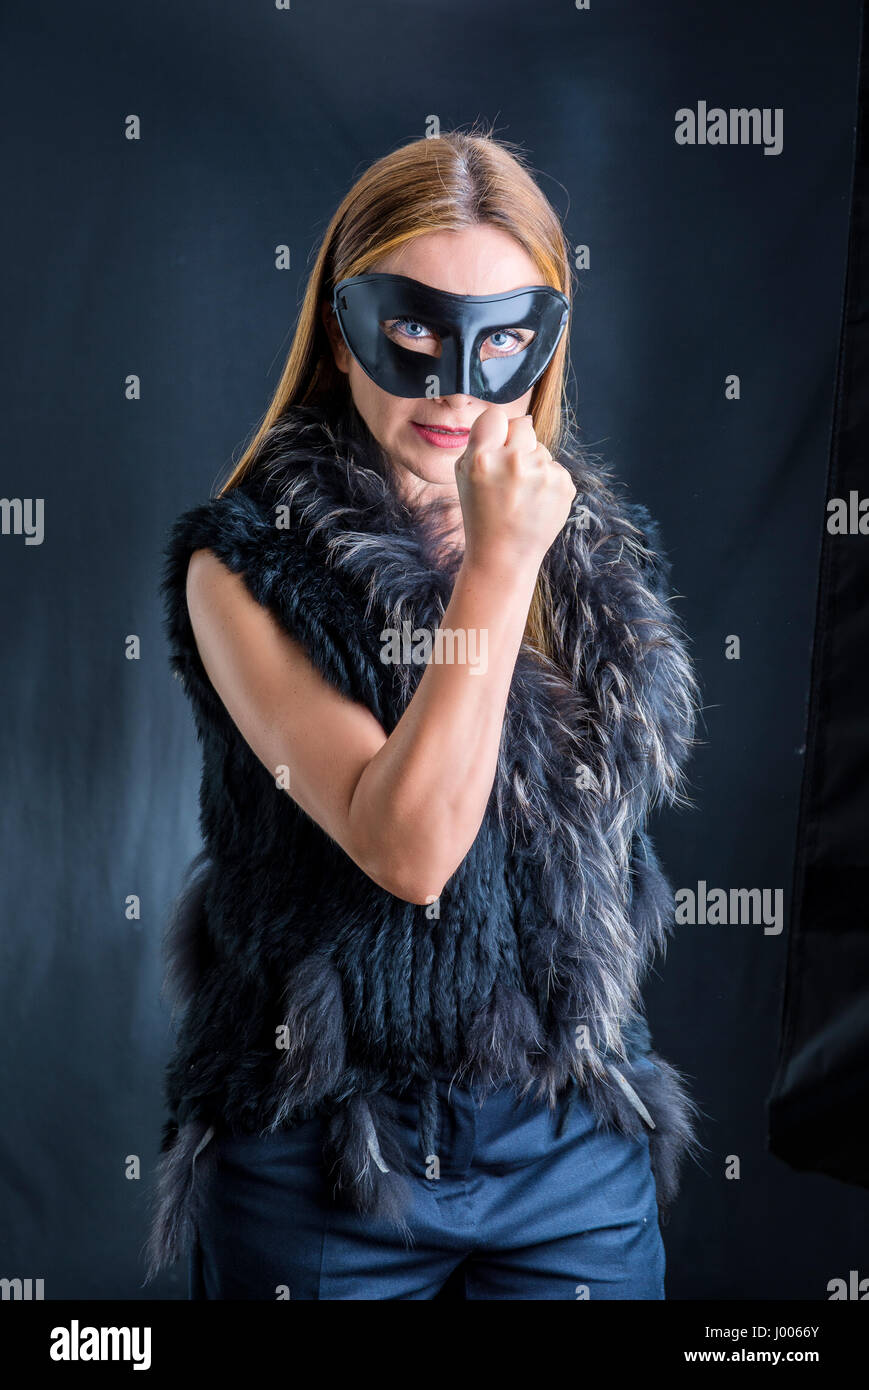 Woman in black mask performing - Stock Image